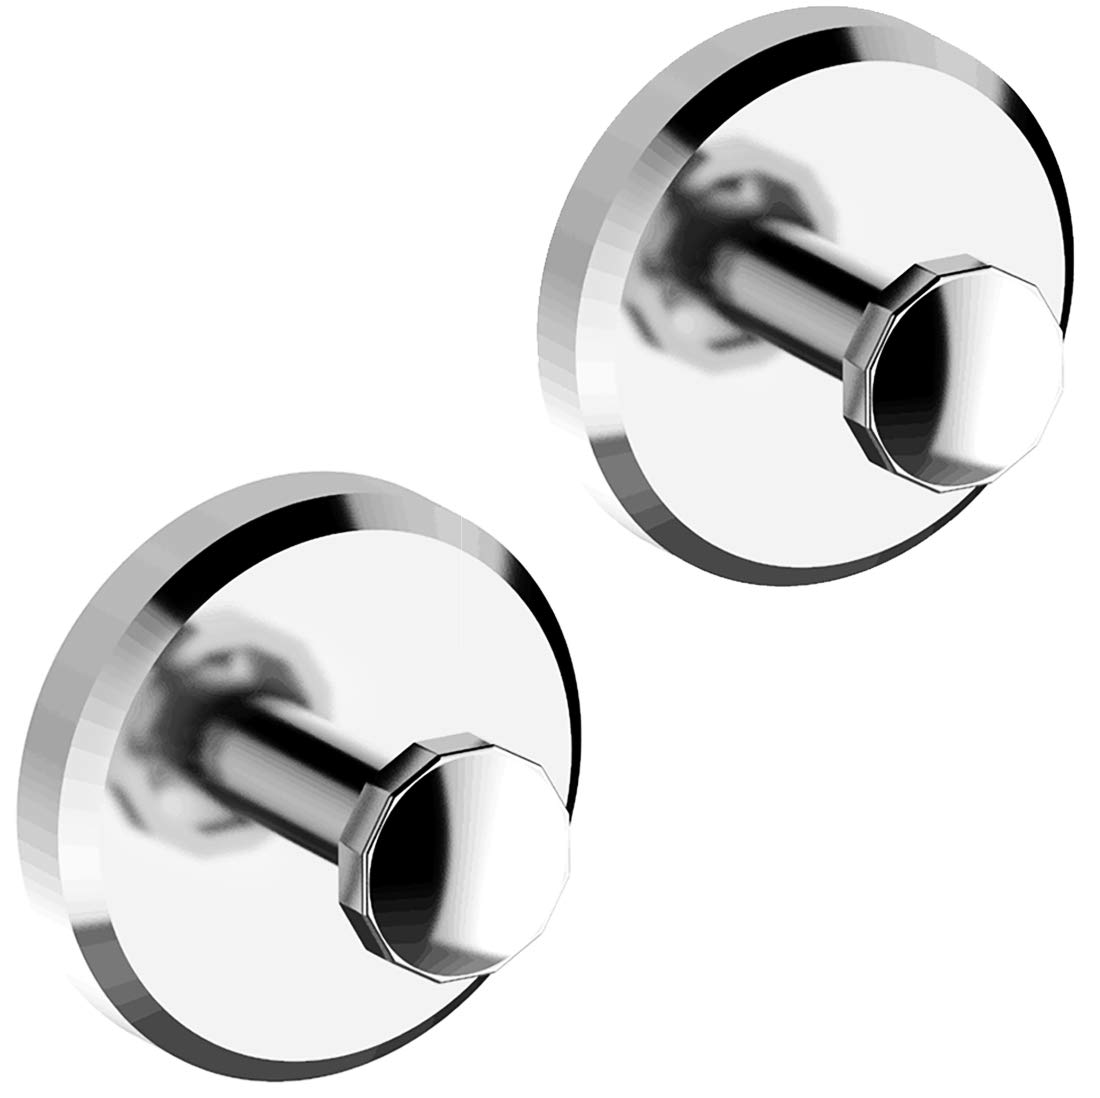 HOME SO Bathroom Hook with Suction Cup Holder, Diamond Collection - Removable Shower & Kitchen Hooks Hanger for Towel, Bath Robe, Coat, Loofah (2-Pack)